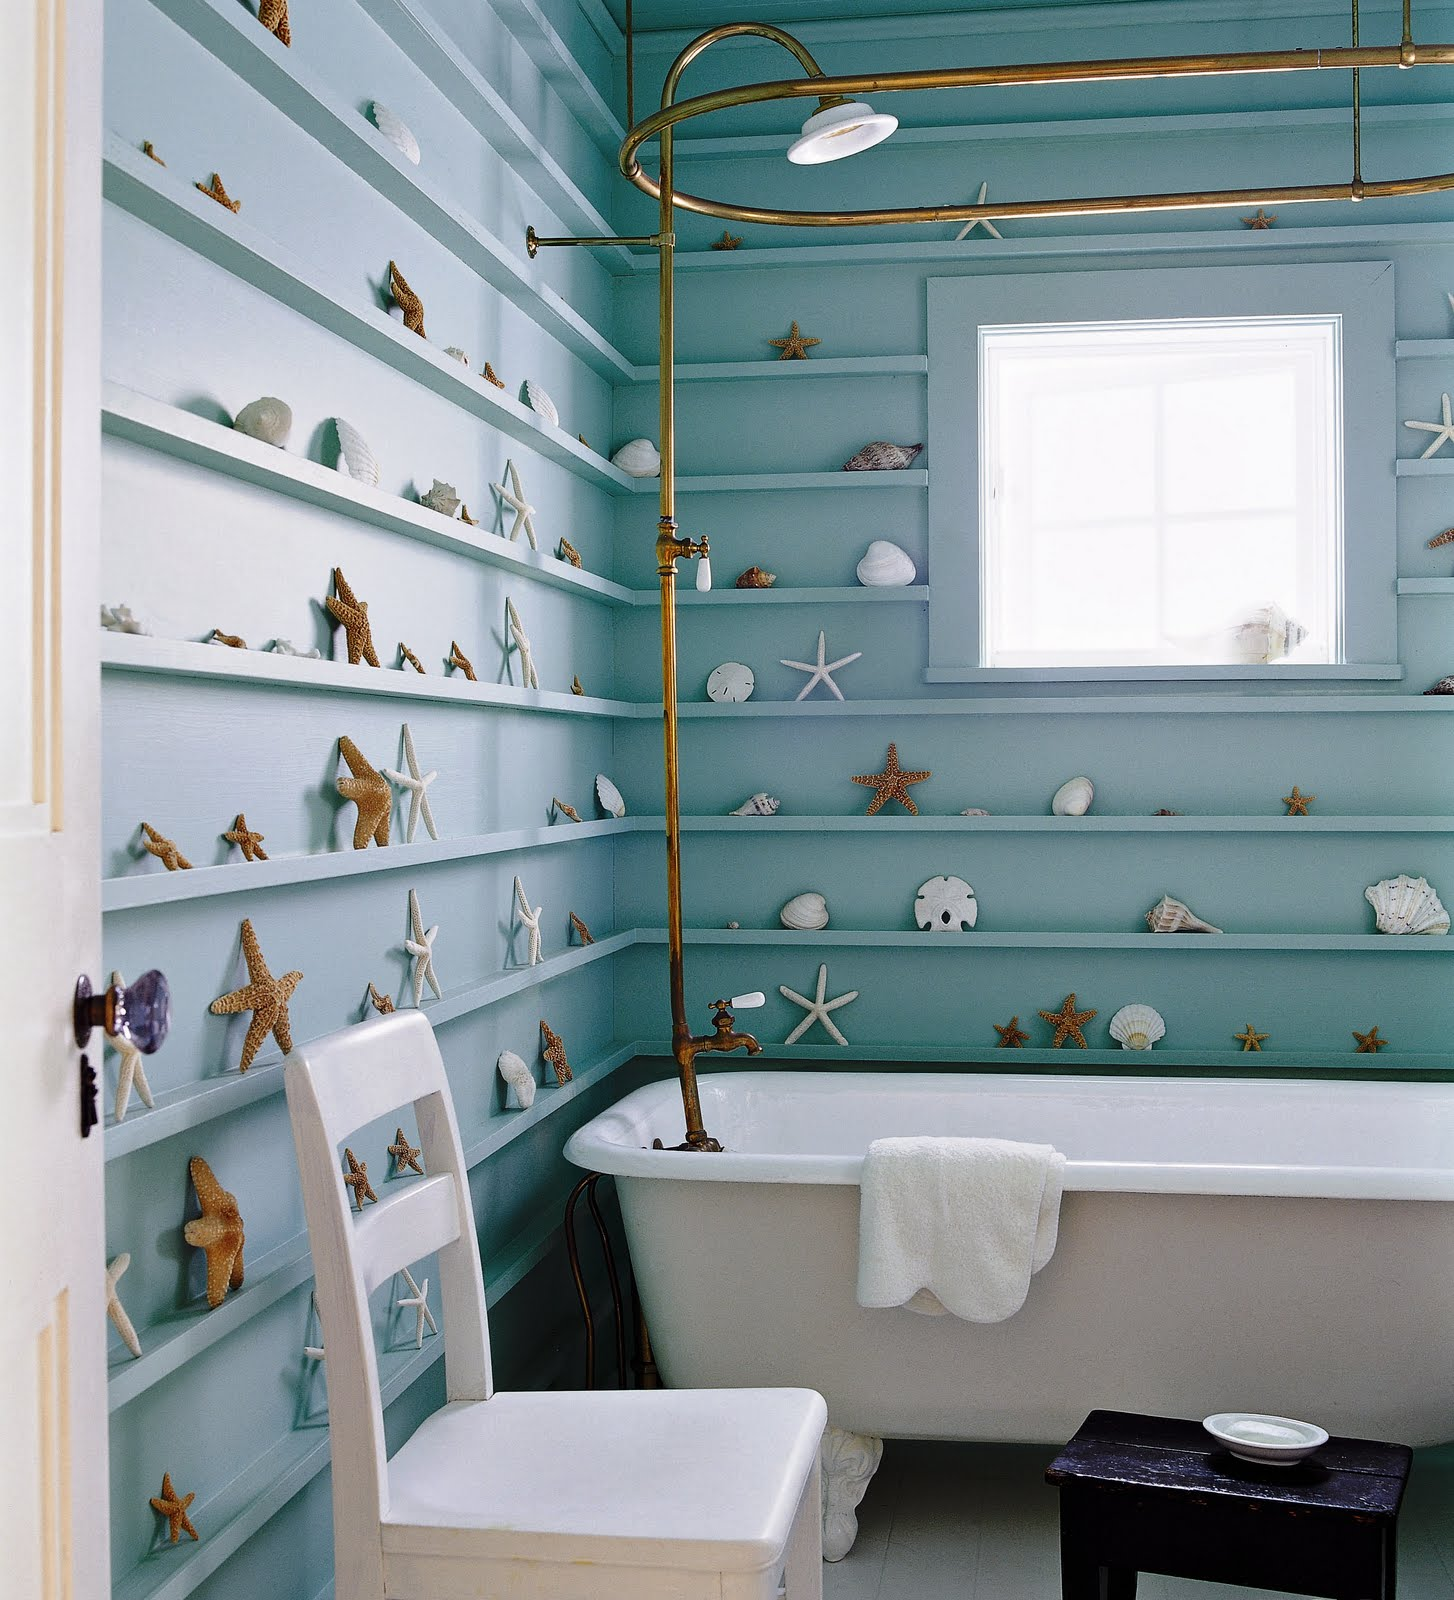 EZ Decorating Know-How: Bathroom Designs - The Nautical Beach Decor